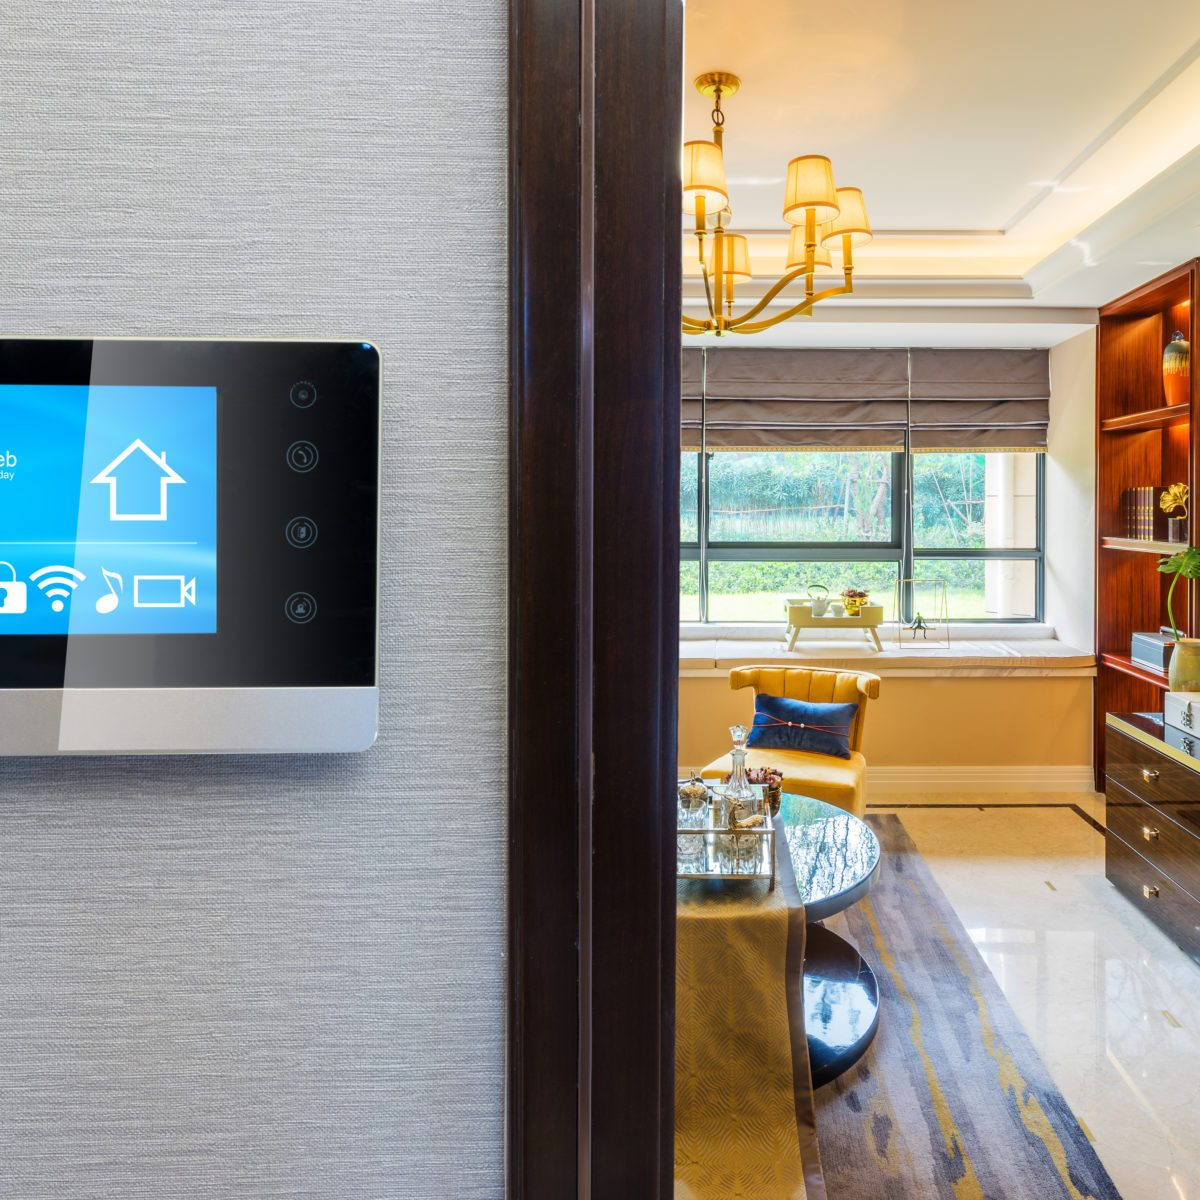 The 18 Things You Need to Have a Smart Home